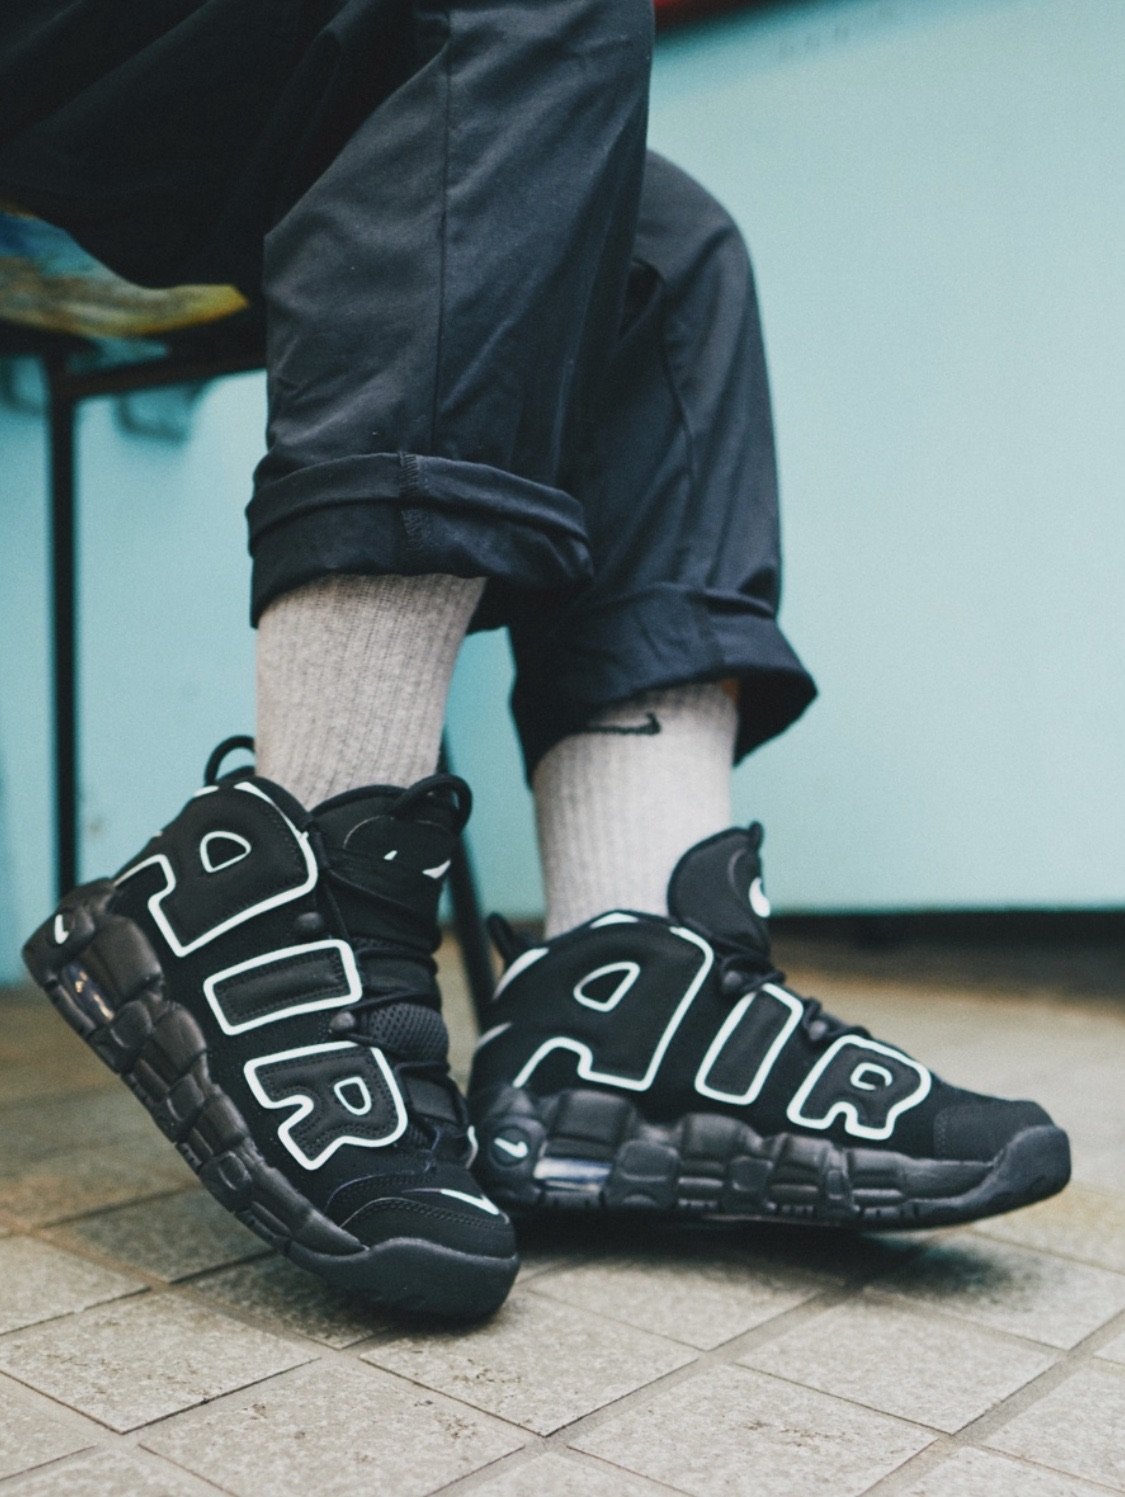 nike-air-more-uptempo-og-black-white-2020-414962-002-release-20201222-snap